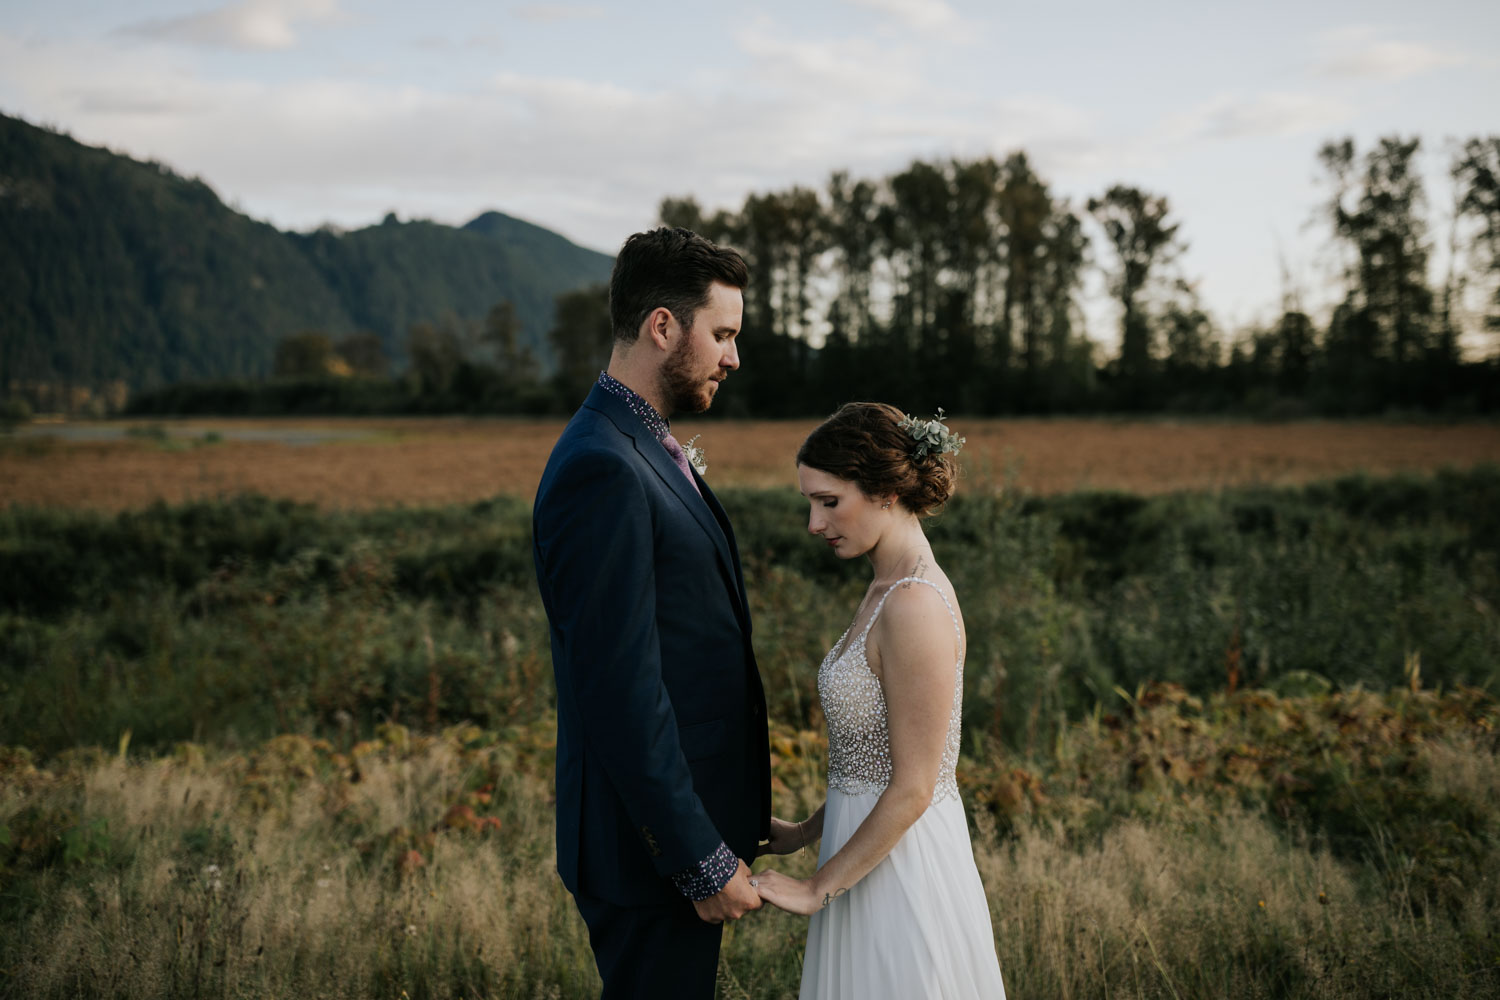 Award winning Vancouver wedding photographer